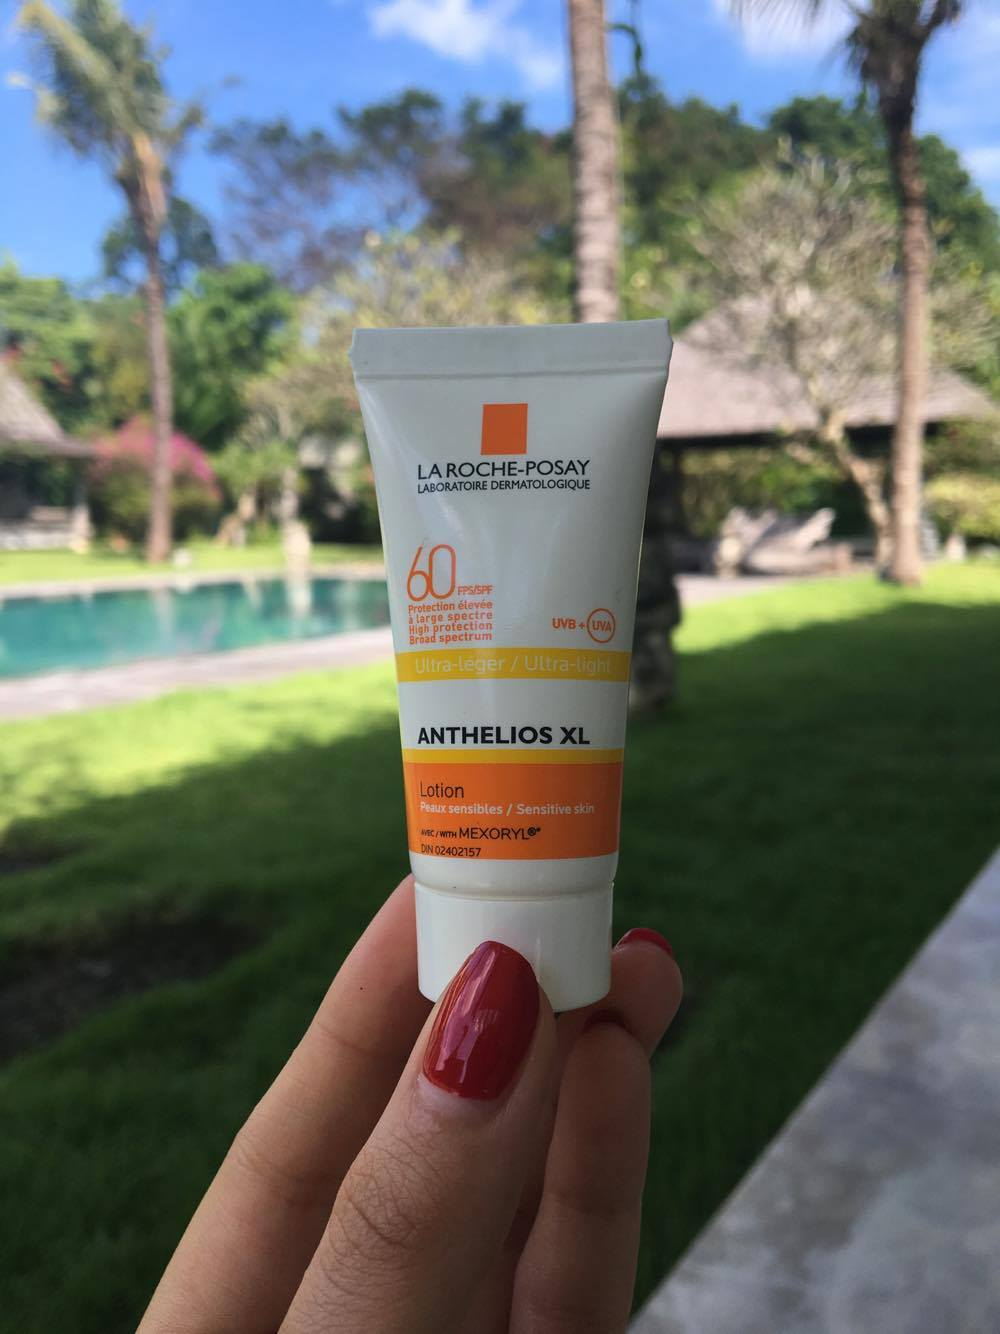 laroche posay-sunscreen-sun protection-BIODERMA-skincare-makeup-natural skincare-natural makeup-makeup artist tips-